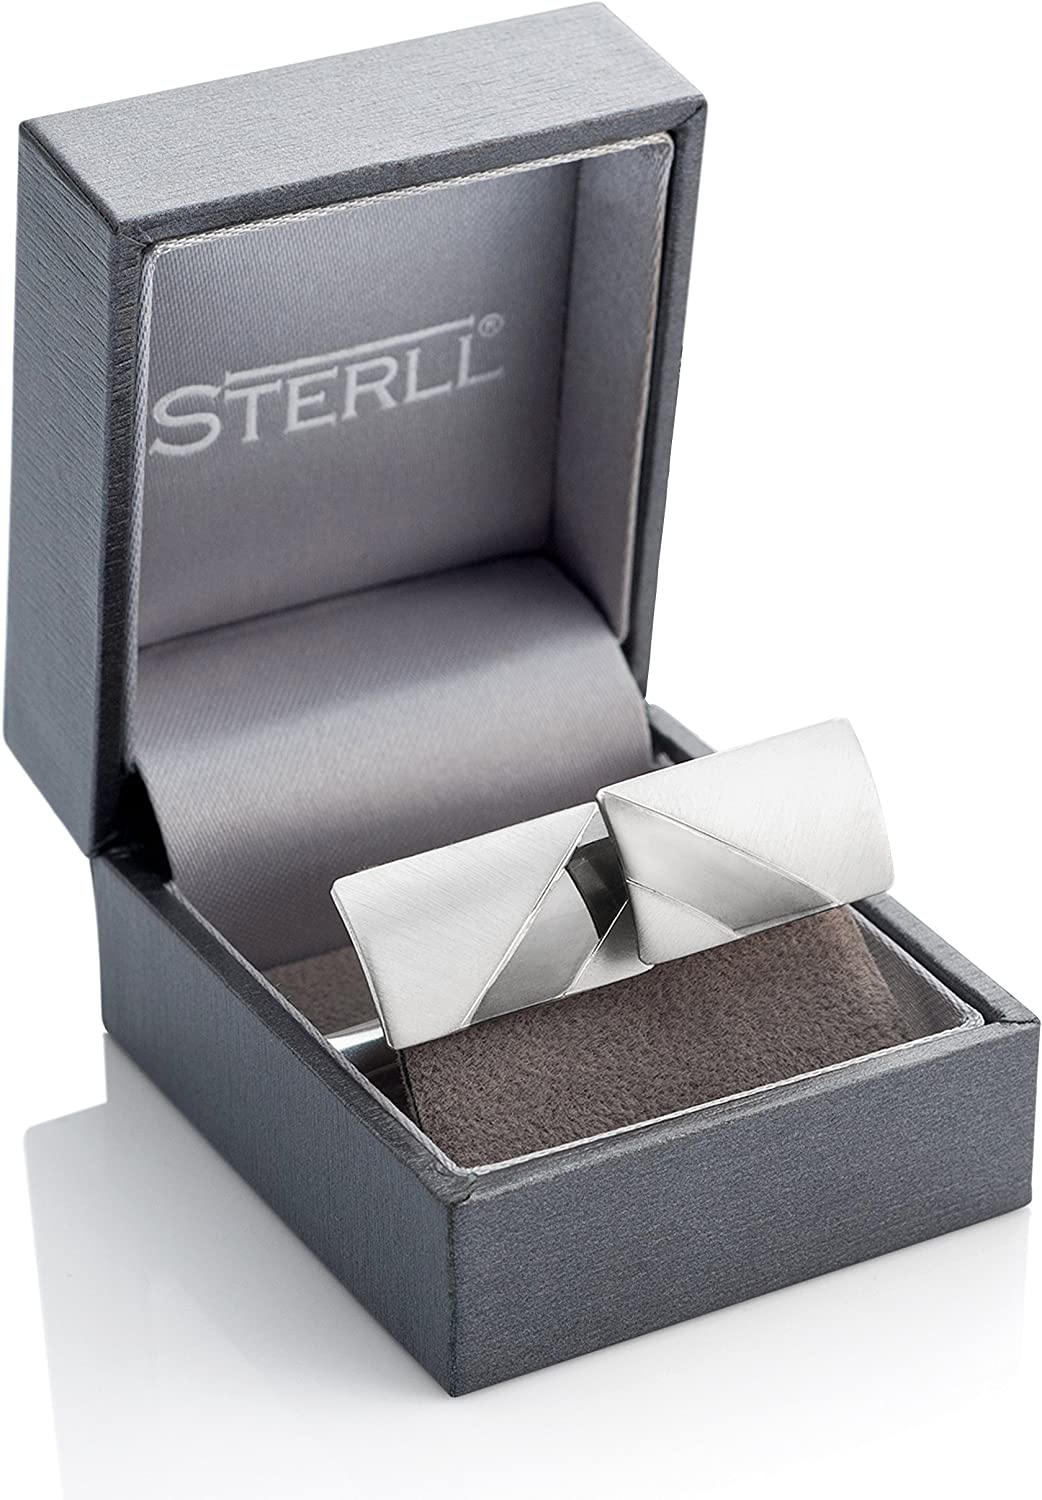 STERLL man Cufflinks Wedding Sterling Silver Brushed With an Oxidized Stripe Jewelry Case